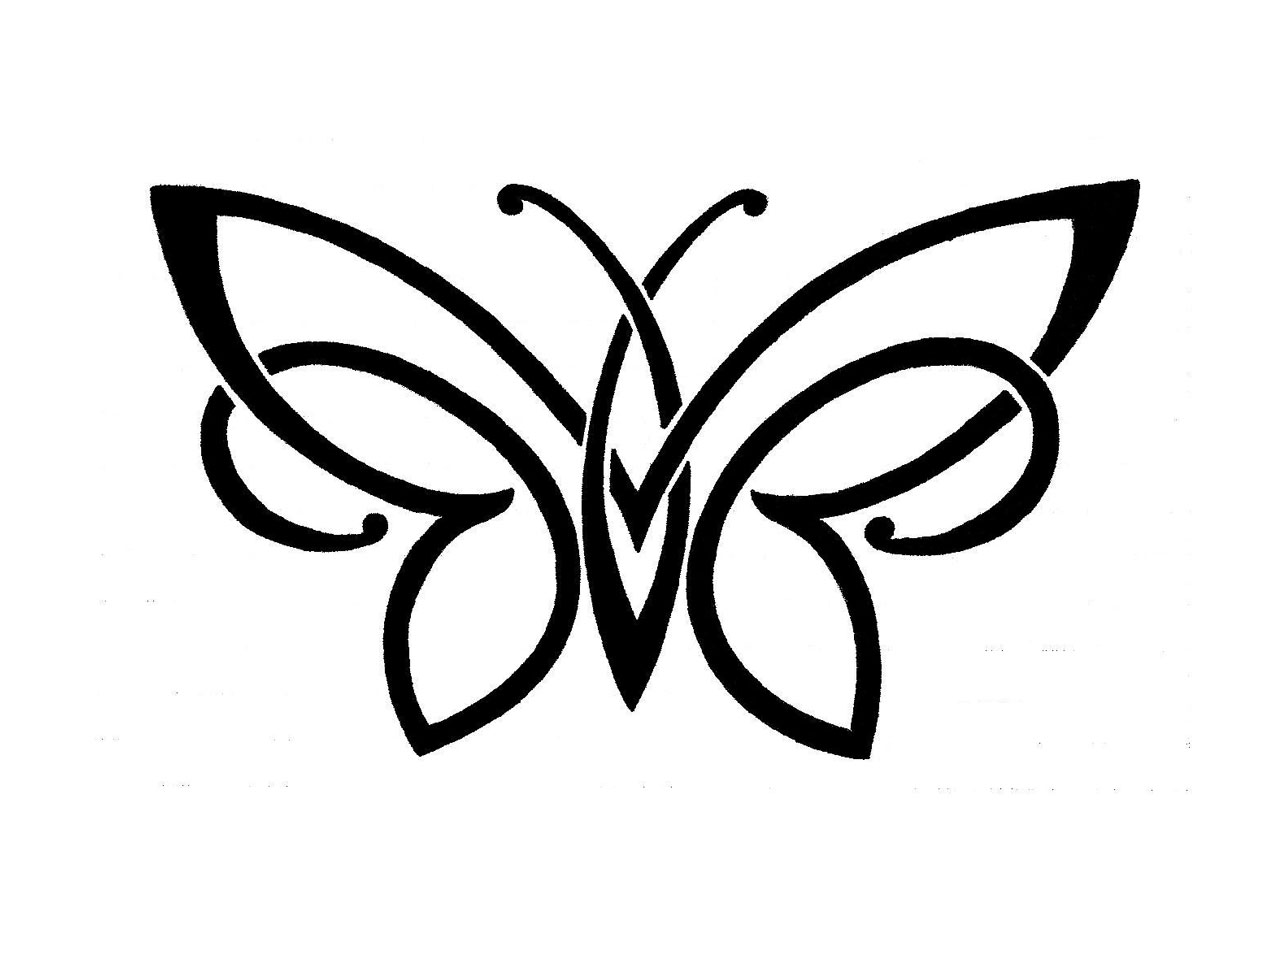 Free Simple Tattoo Designs To Draw For Men, Download Free